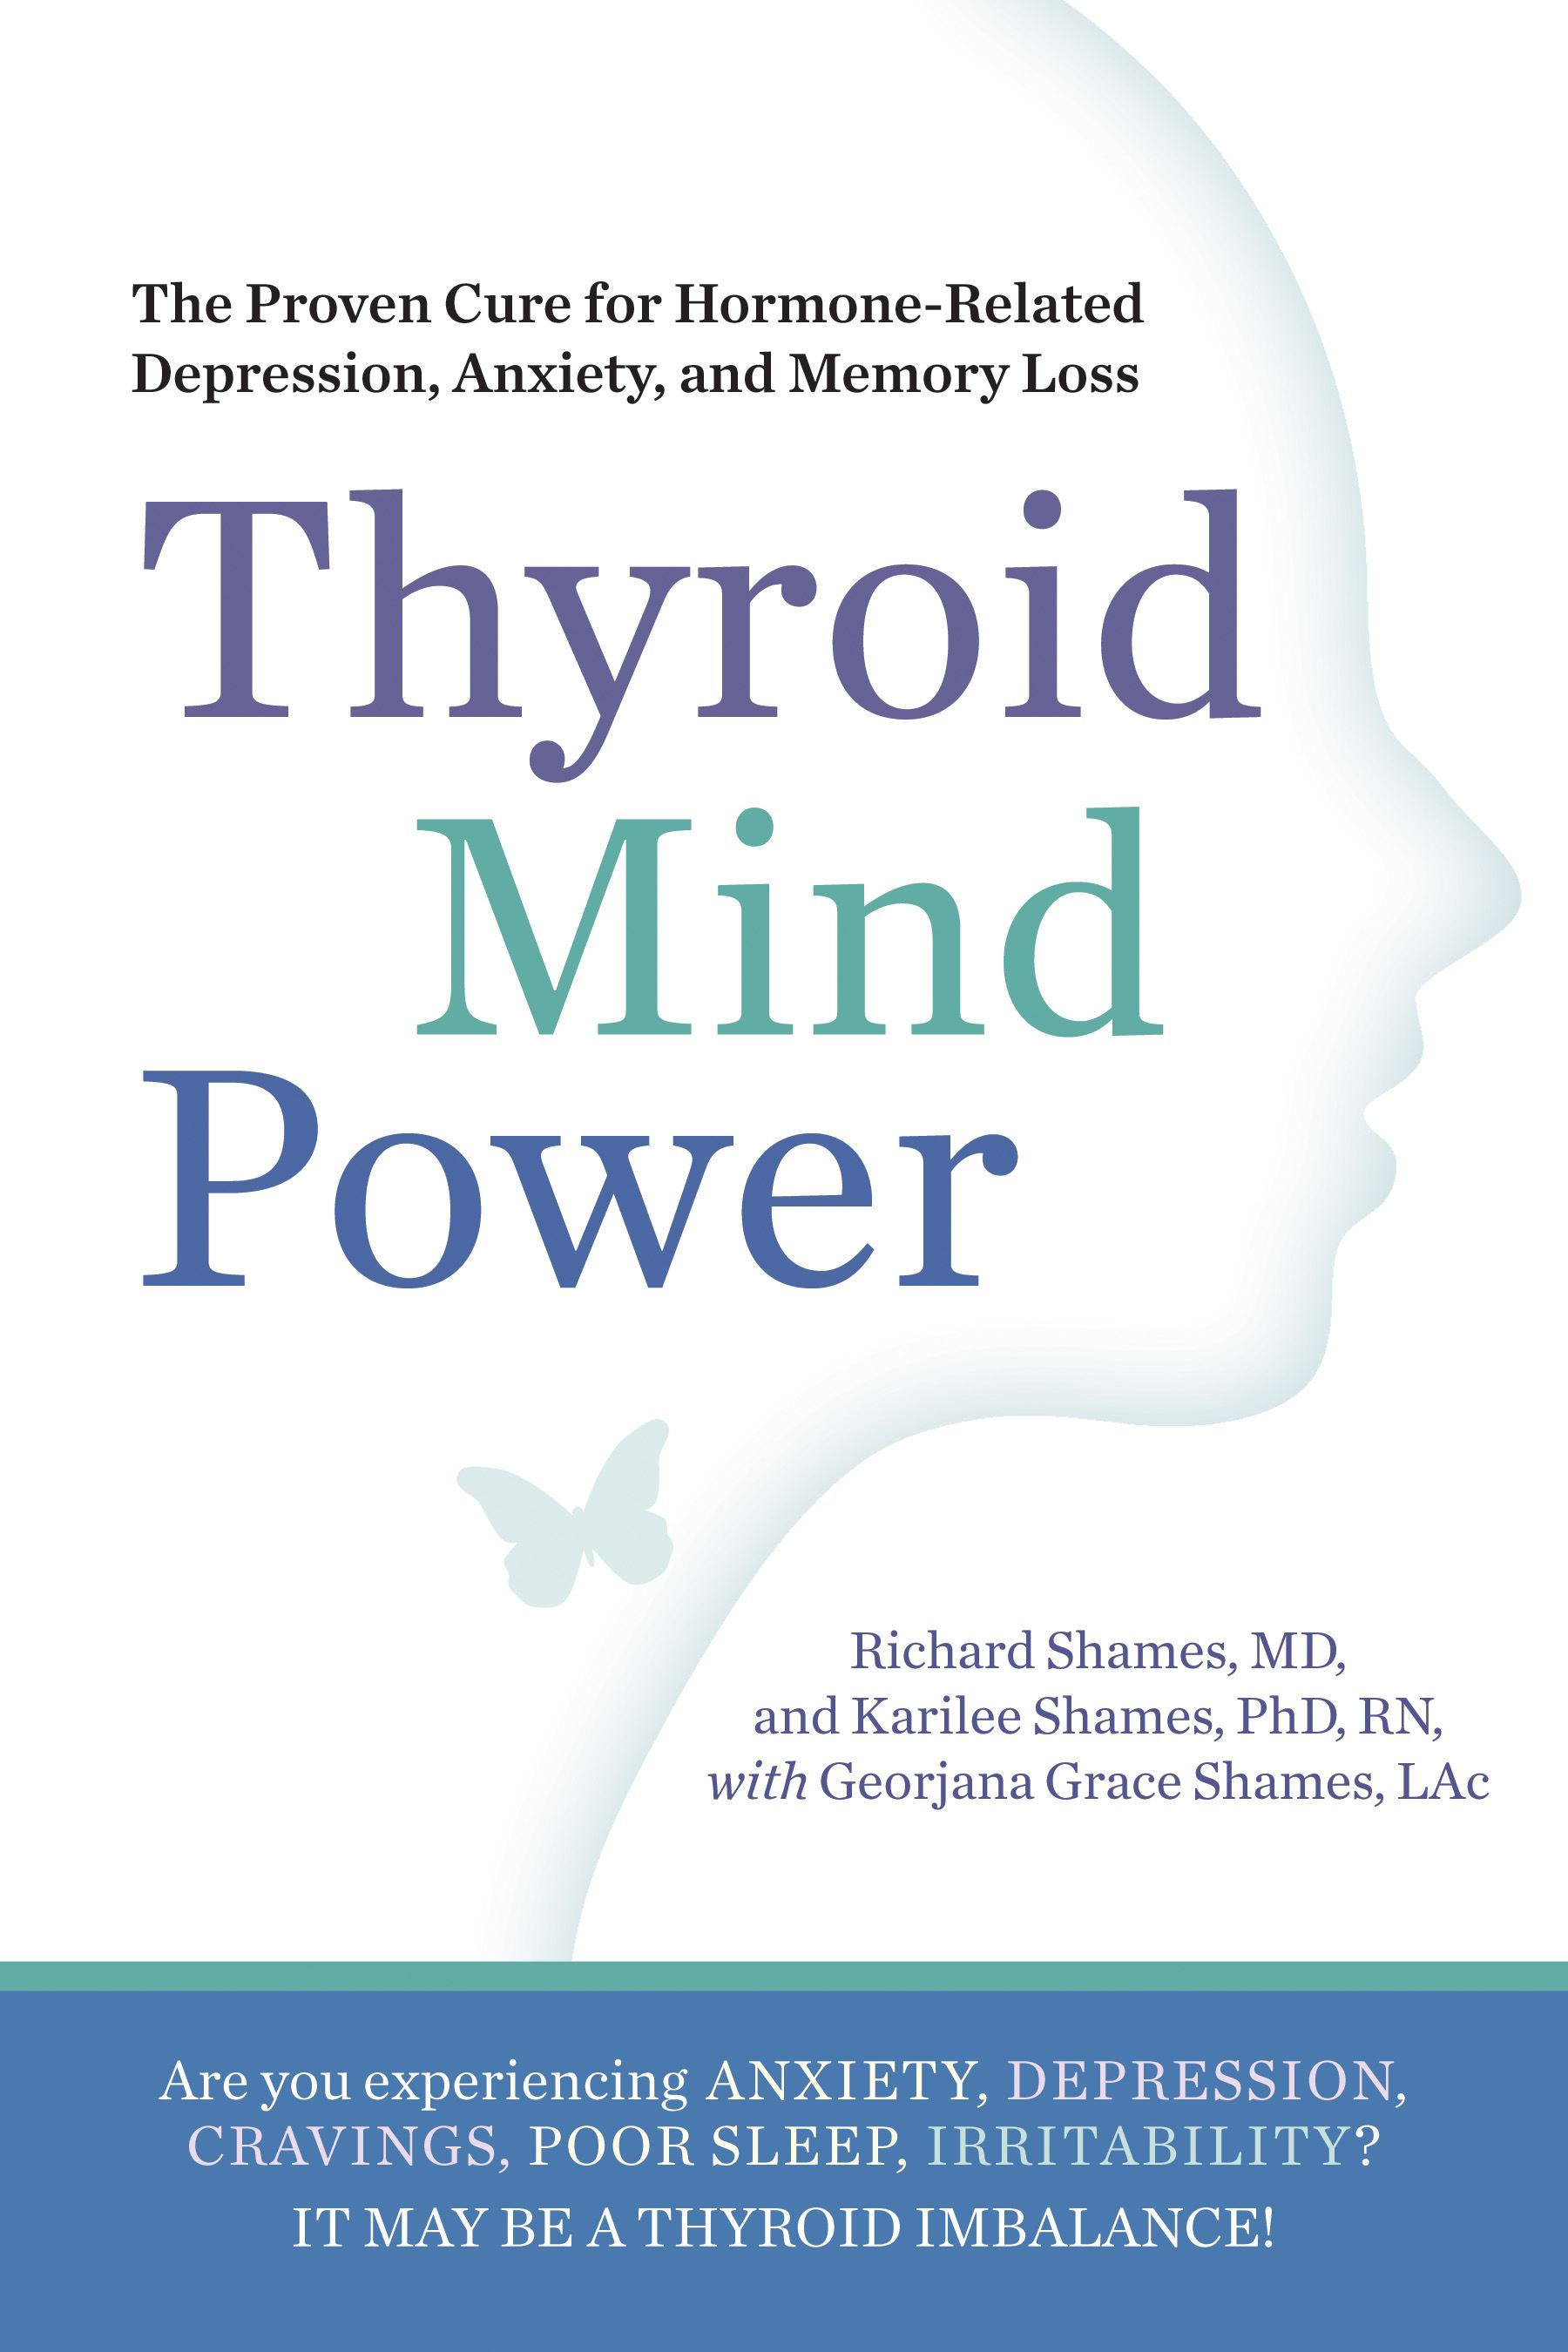 Thyroid Mind Power: The Proven Cure for Hormone-Related Depression Anxiety and Memory Loss By: Richard Shames,Karilee Shames,Georjana Grace Shames